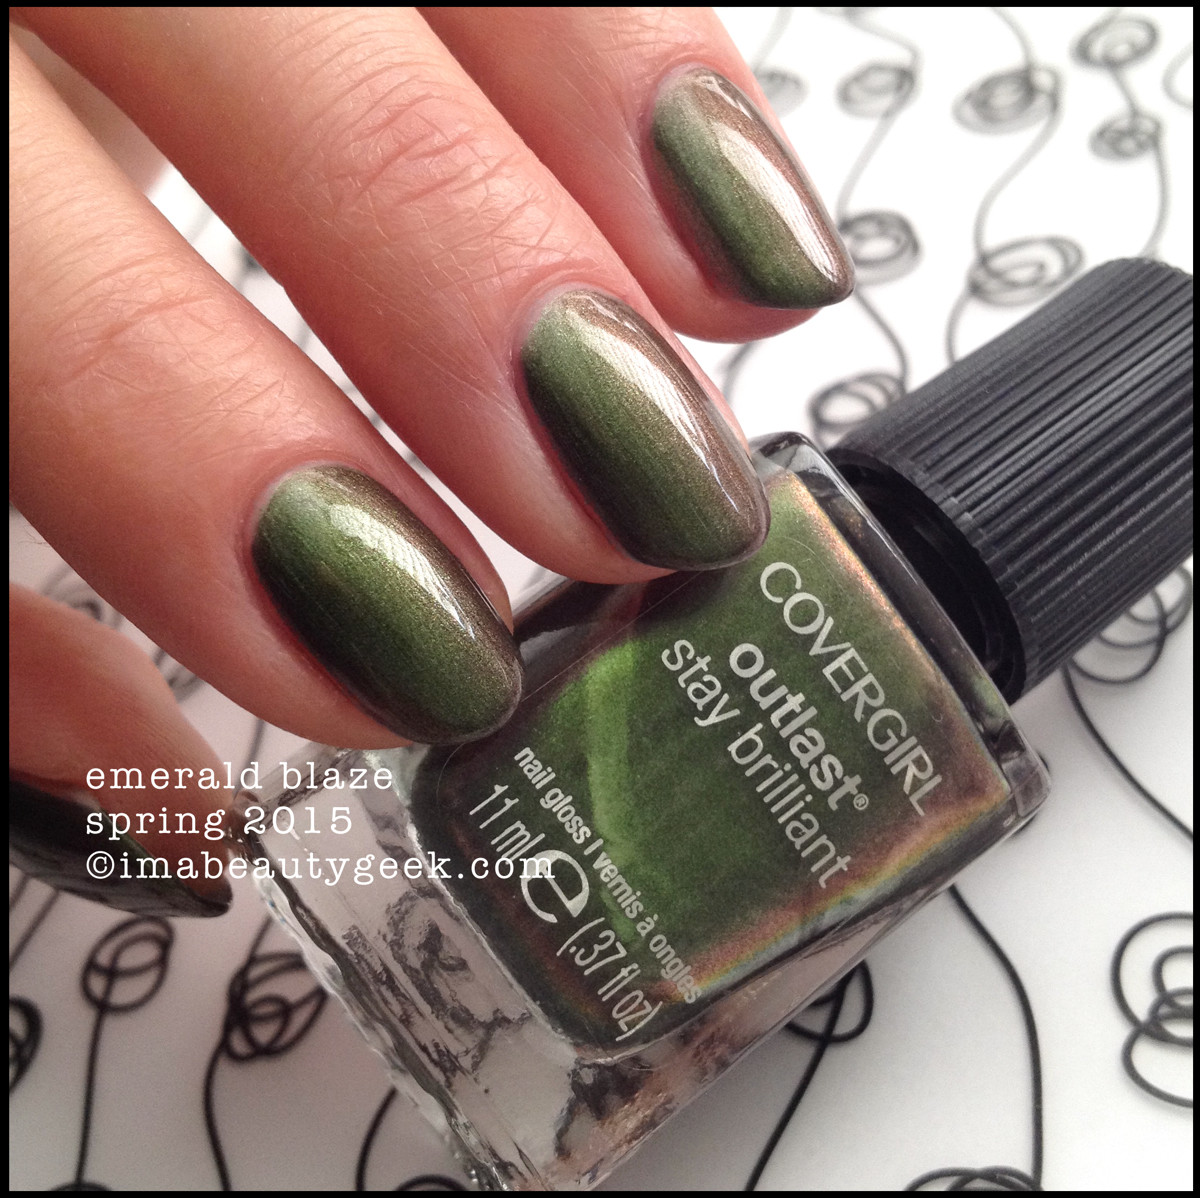 CoverGirl Nails Spring 2015_CoverGirl Emerald Blaze Outlast